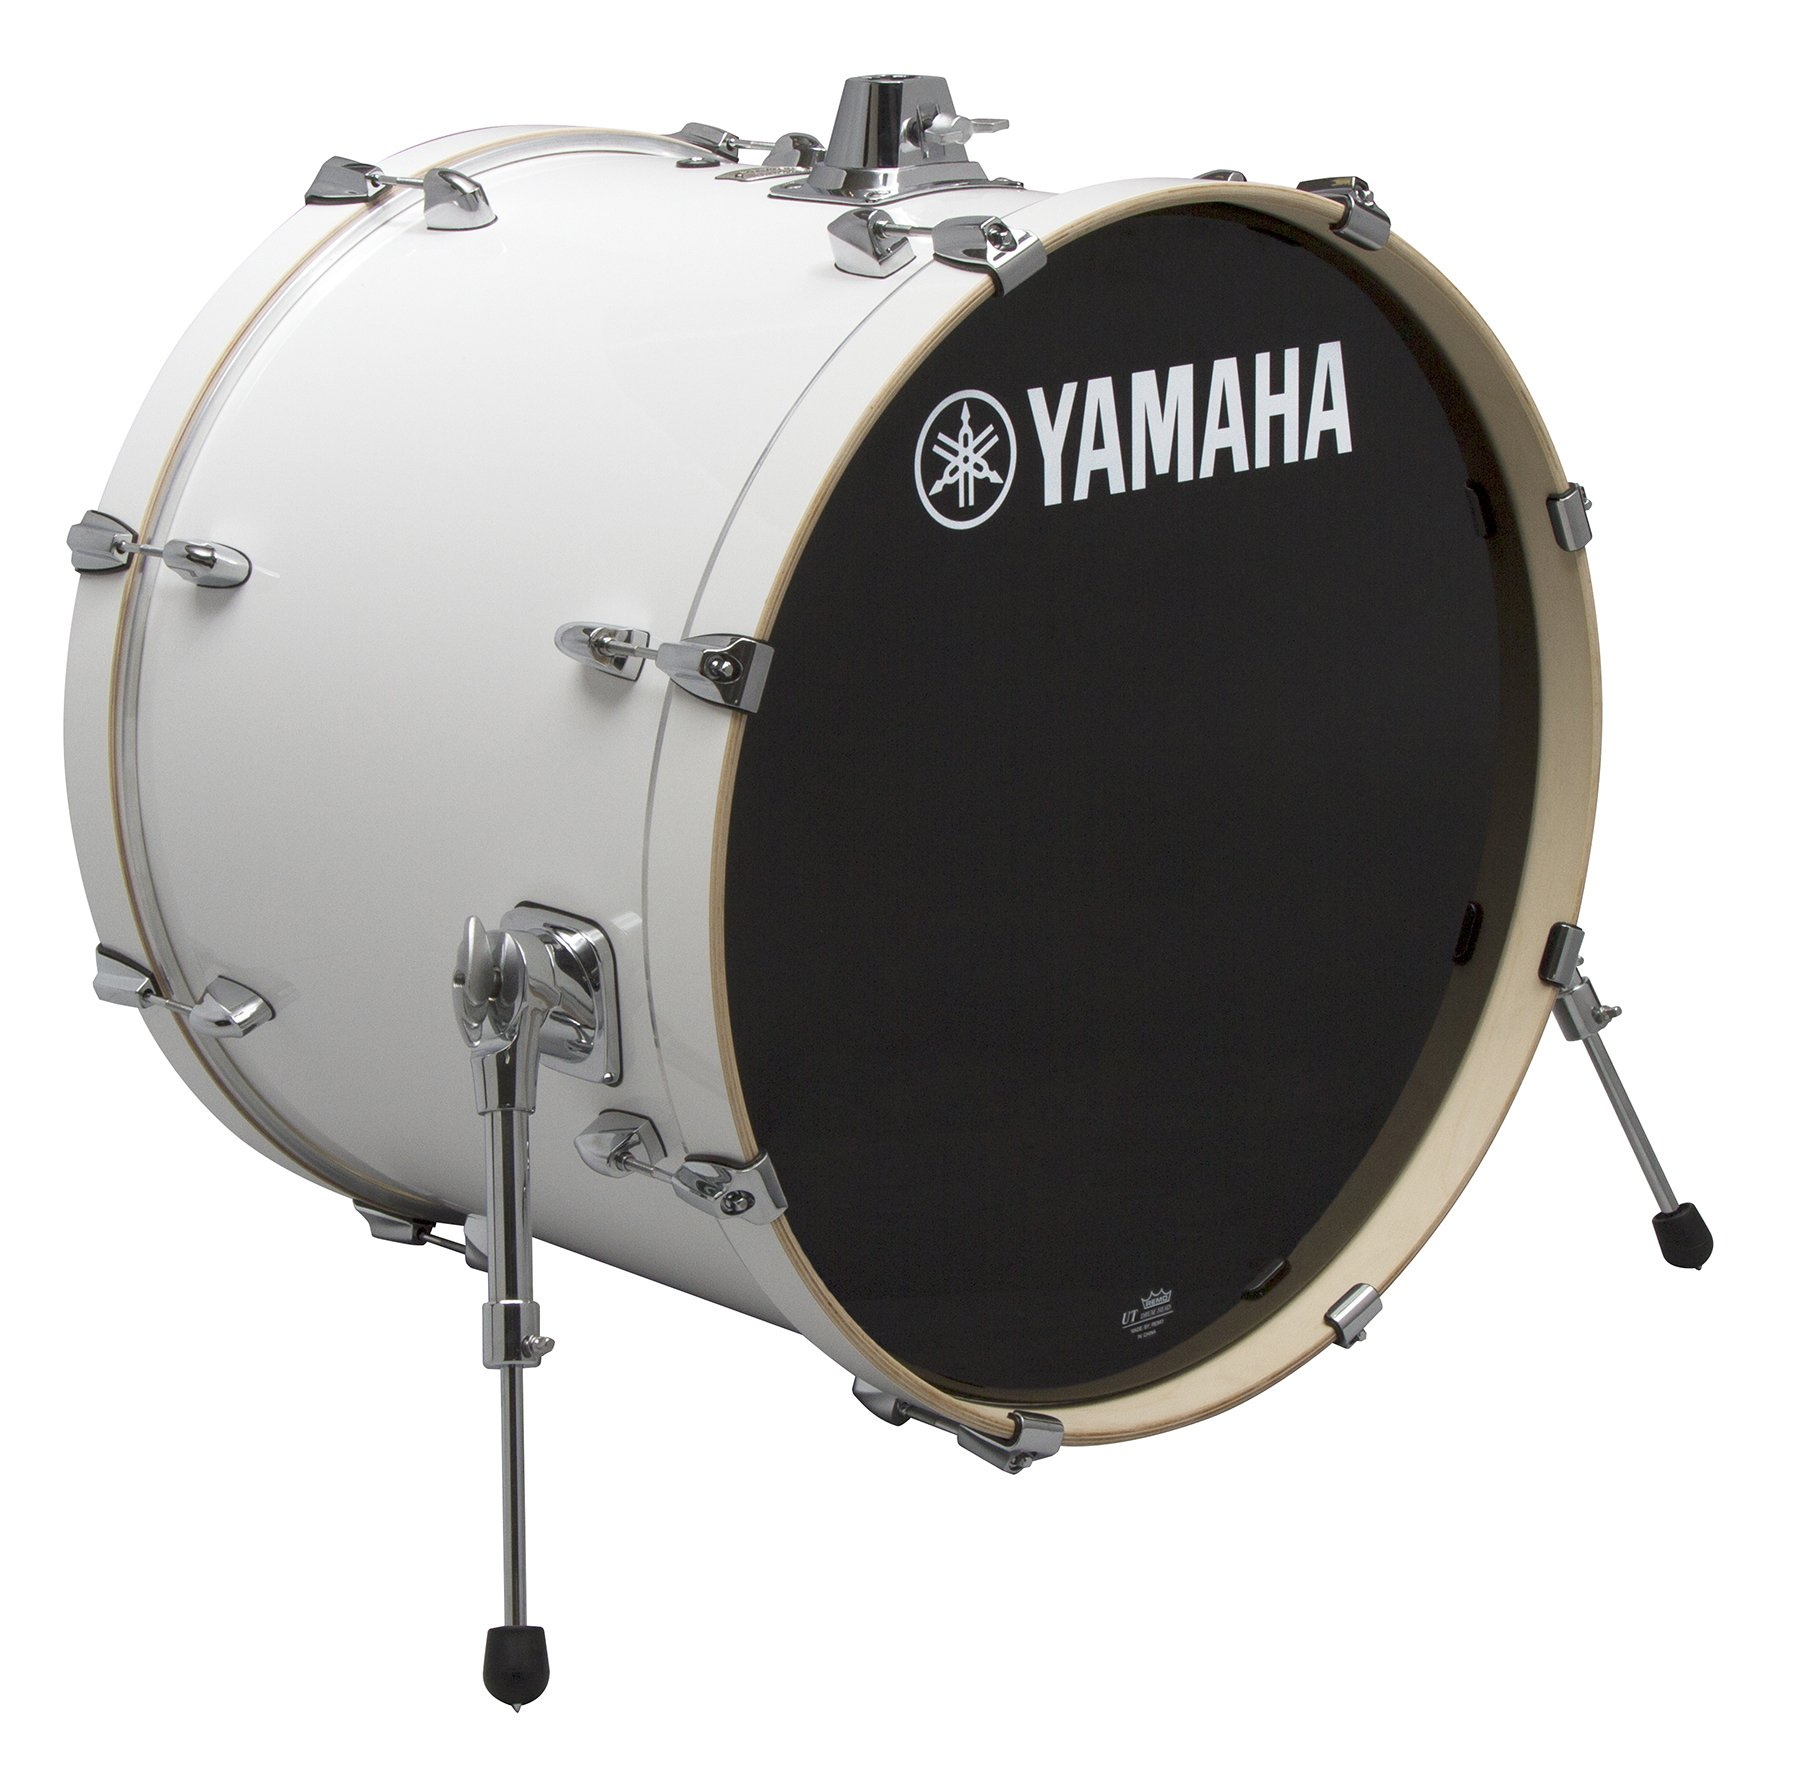 Yamaha Stage Custom Birch 18x15 Bass Drum, Pure White